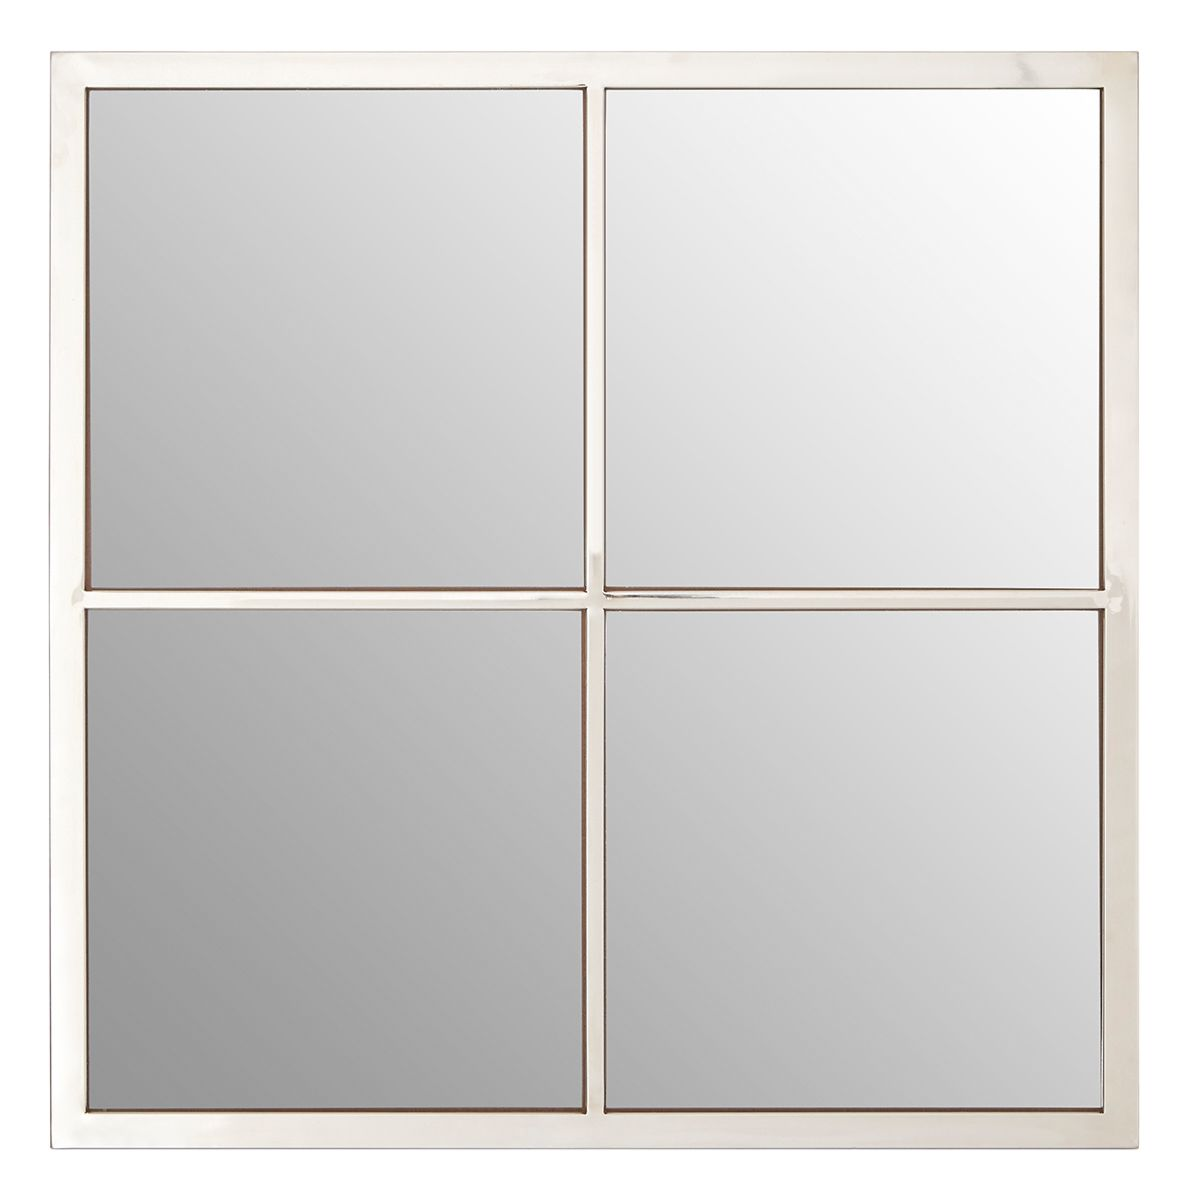 Premier Housewares Descartes Wall Mirror with 4 Squares - Silver Metal Frame